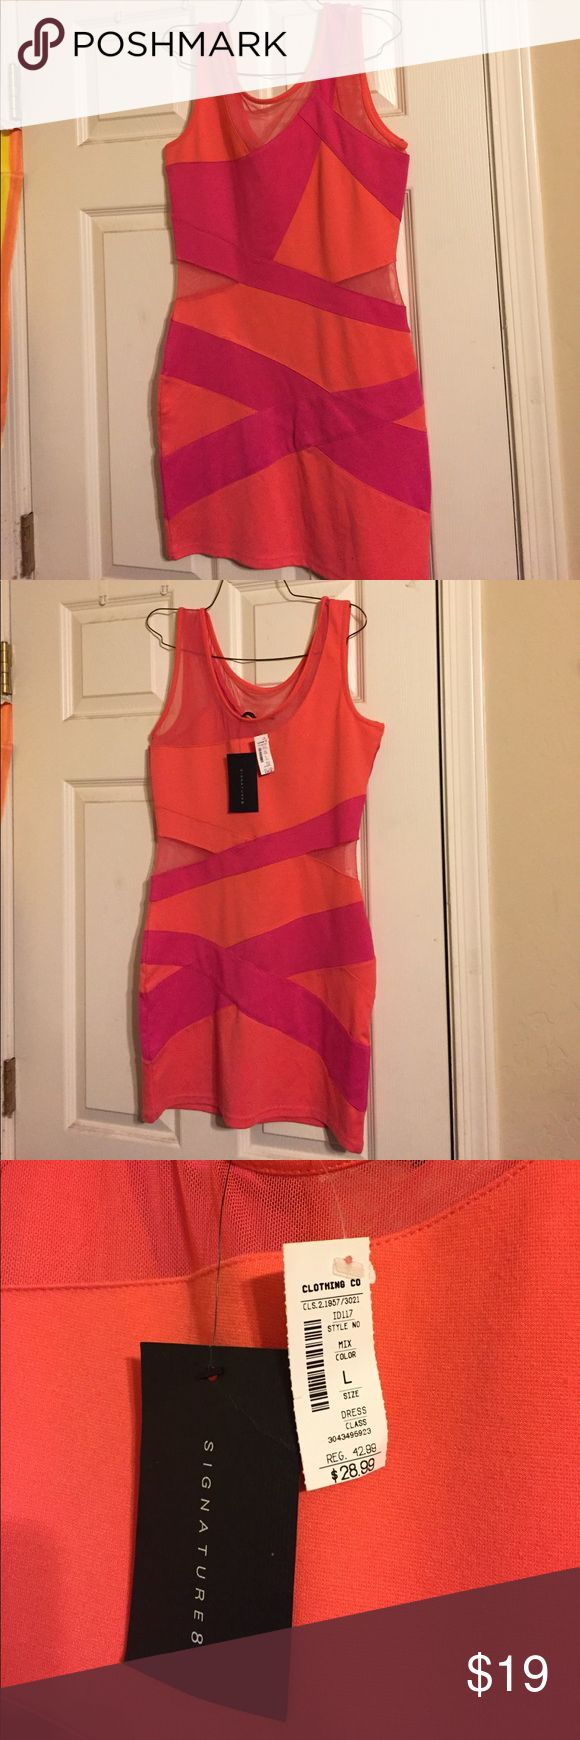 Pink and orange mini dress Pink and orange mini dress with mesh cut outs. New with tags. Dresses Mini